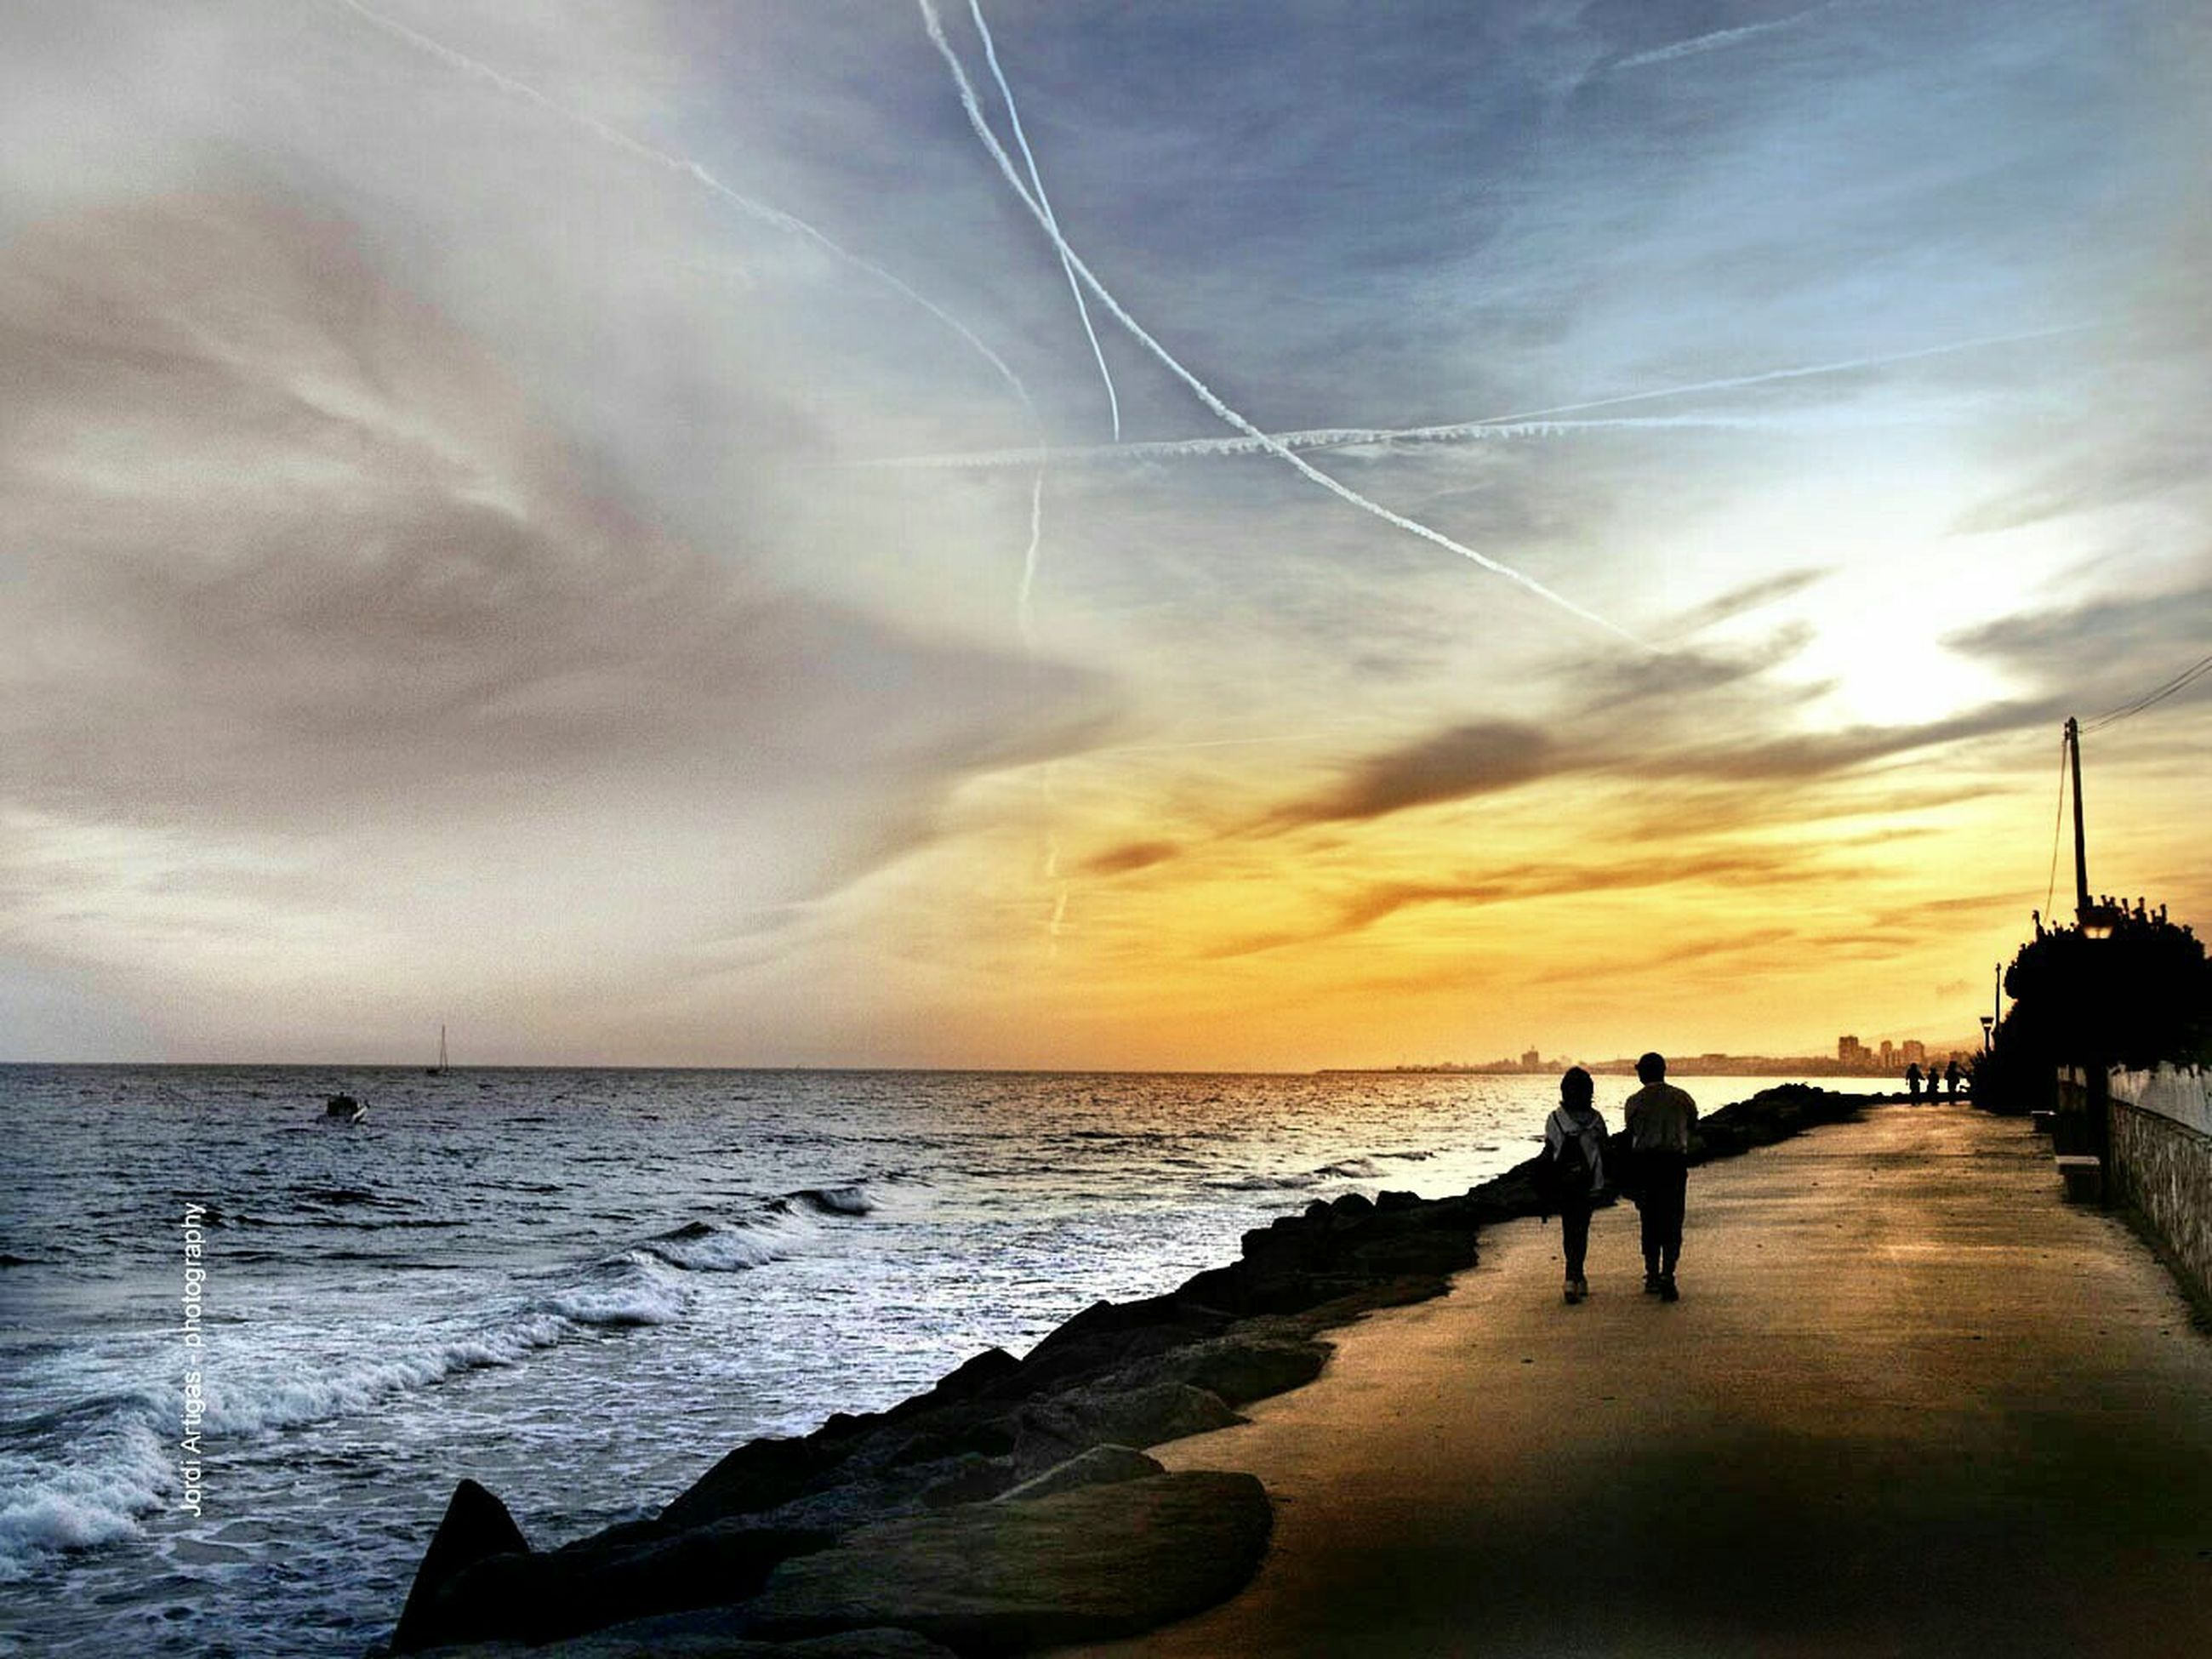 sea, water, horizon over water, sky, sunset, silhouette, scenics, beach, cloud - sky, beauty in nature, tranquil scene, tranquility, shore, men, nature, idyllic, leisure activity, cloudy, cloud